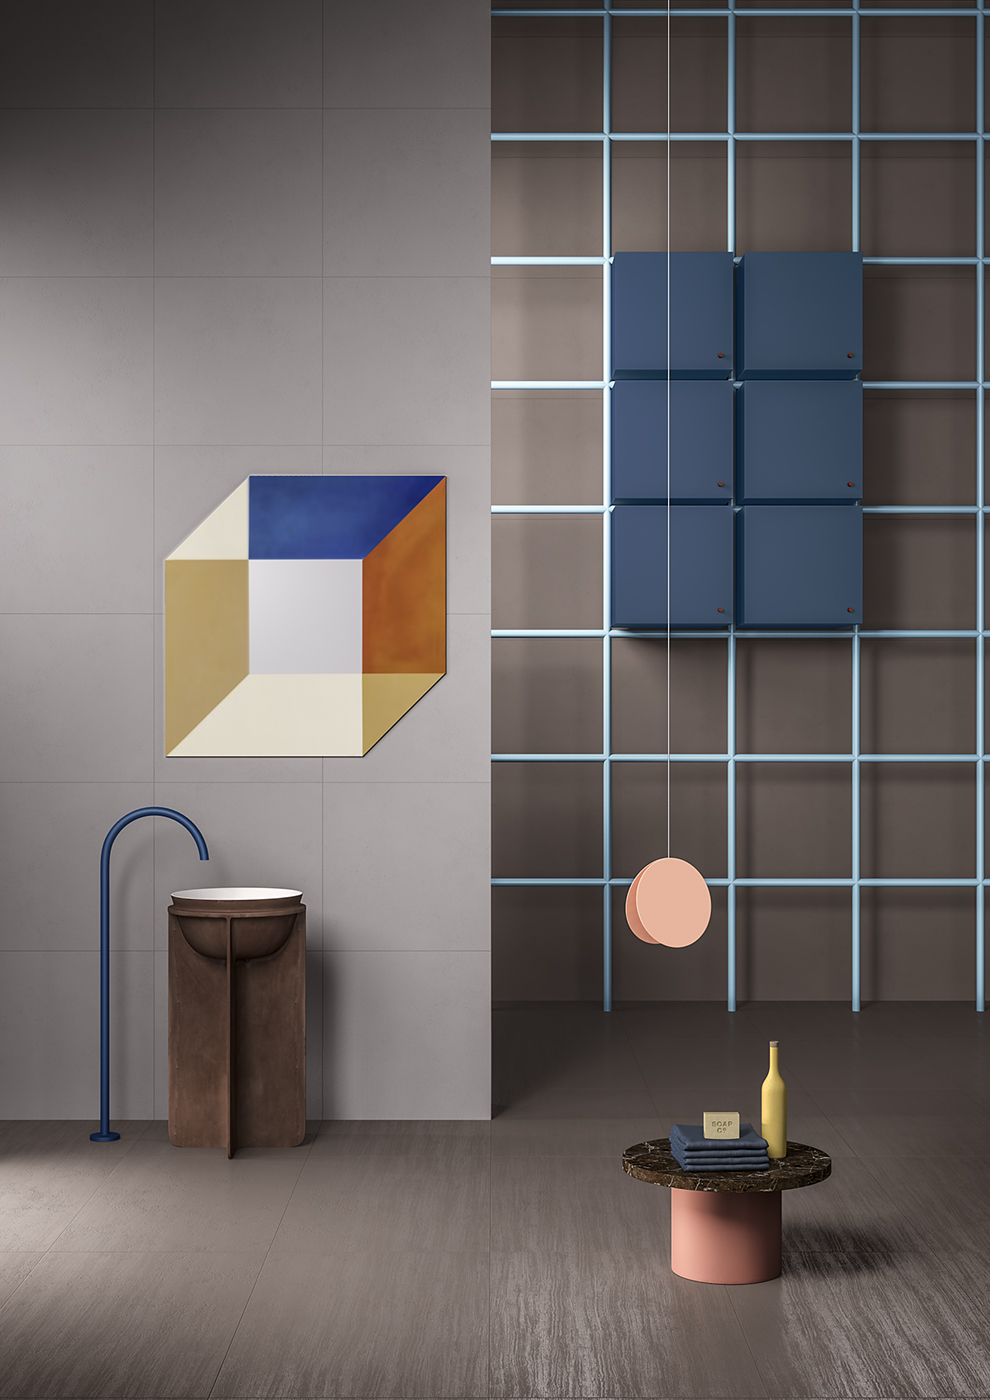 #TERZOPIANO IMAGE PRODUCTION AND ARTISTIC DIRECTION FOR #FIANDRE || #CERSAIE2017